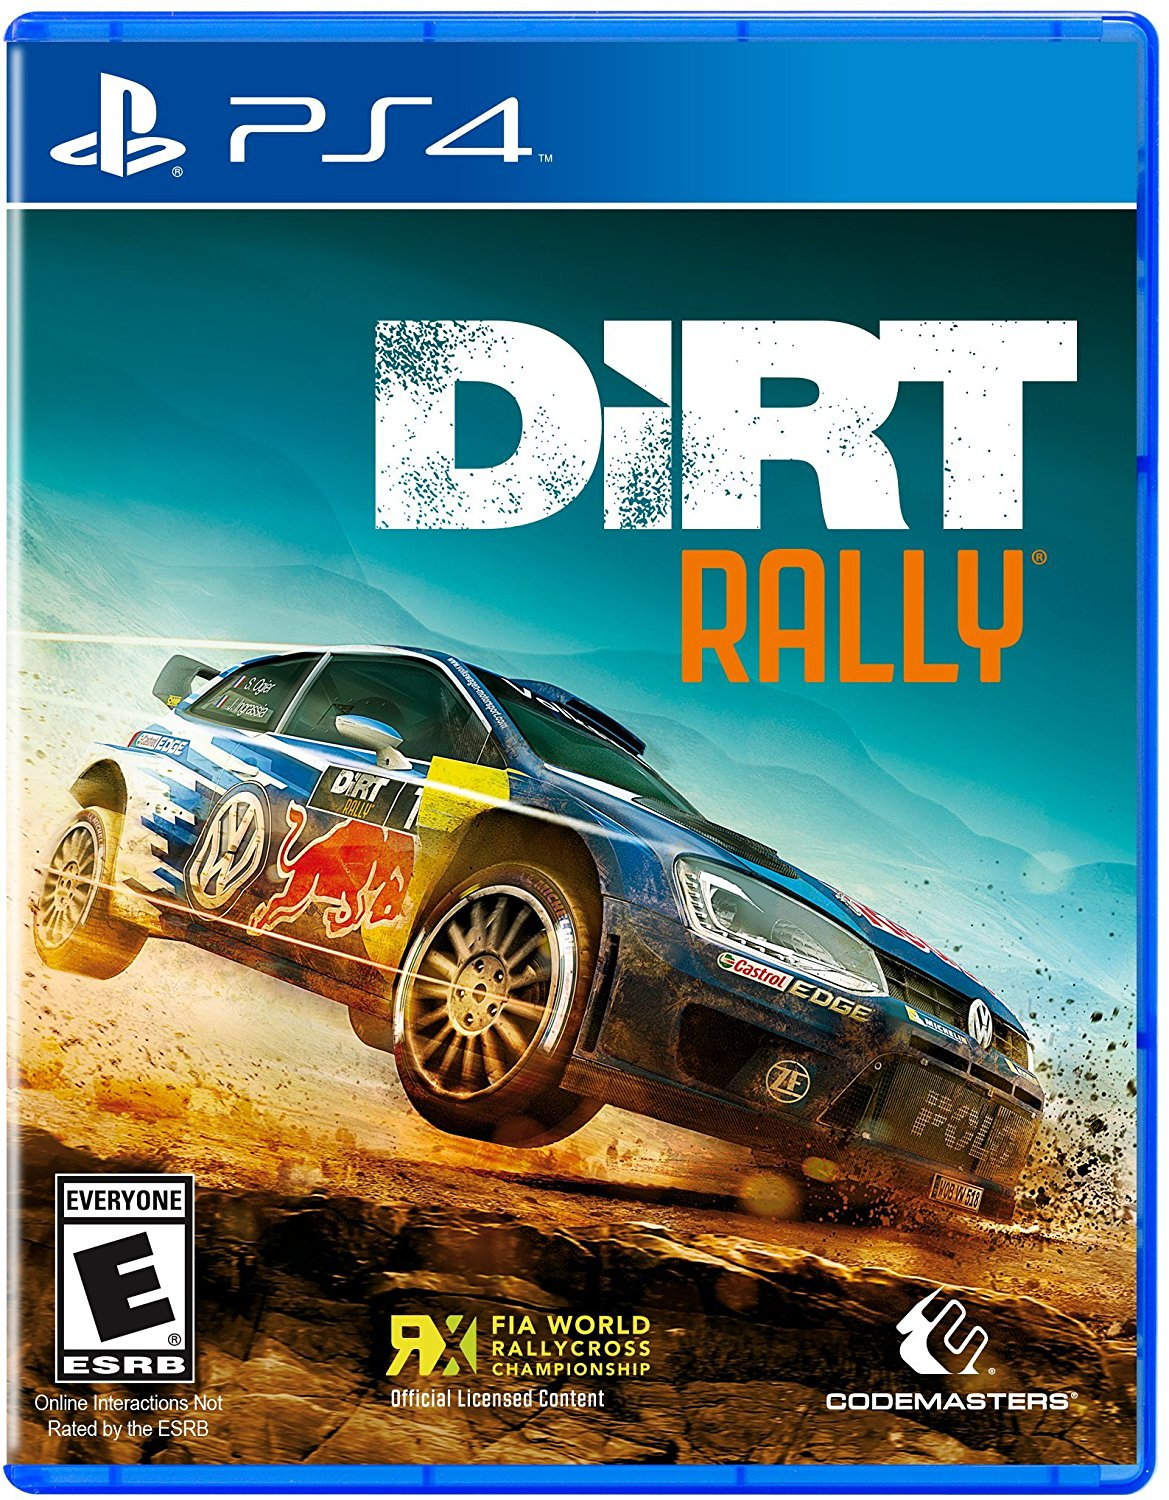 PS4 Dirt rally (PlayStation 4)